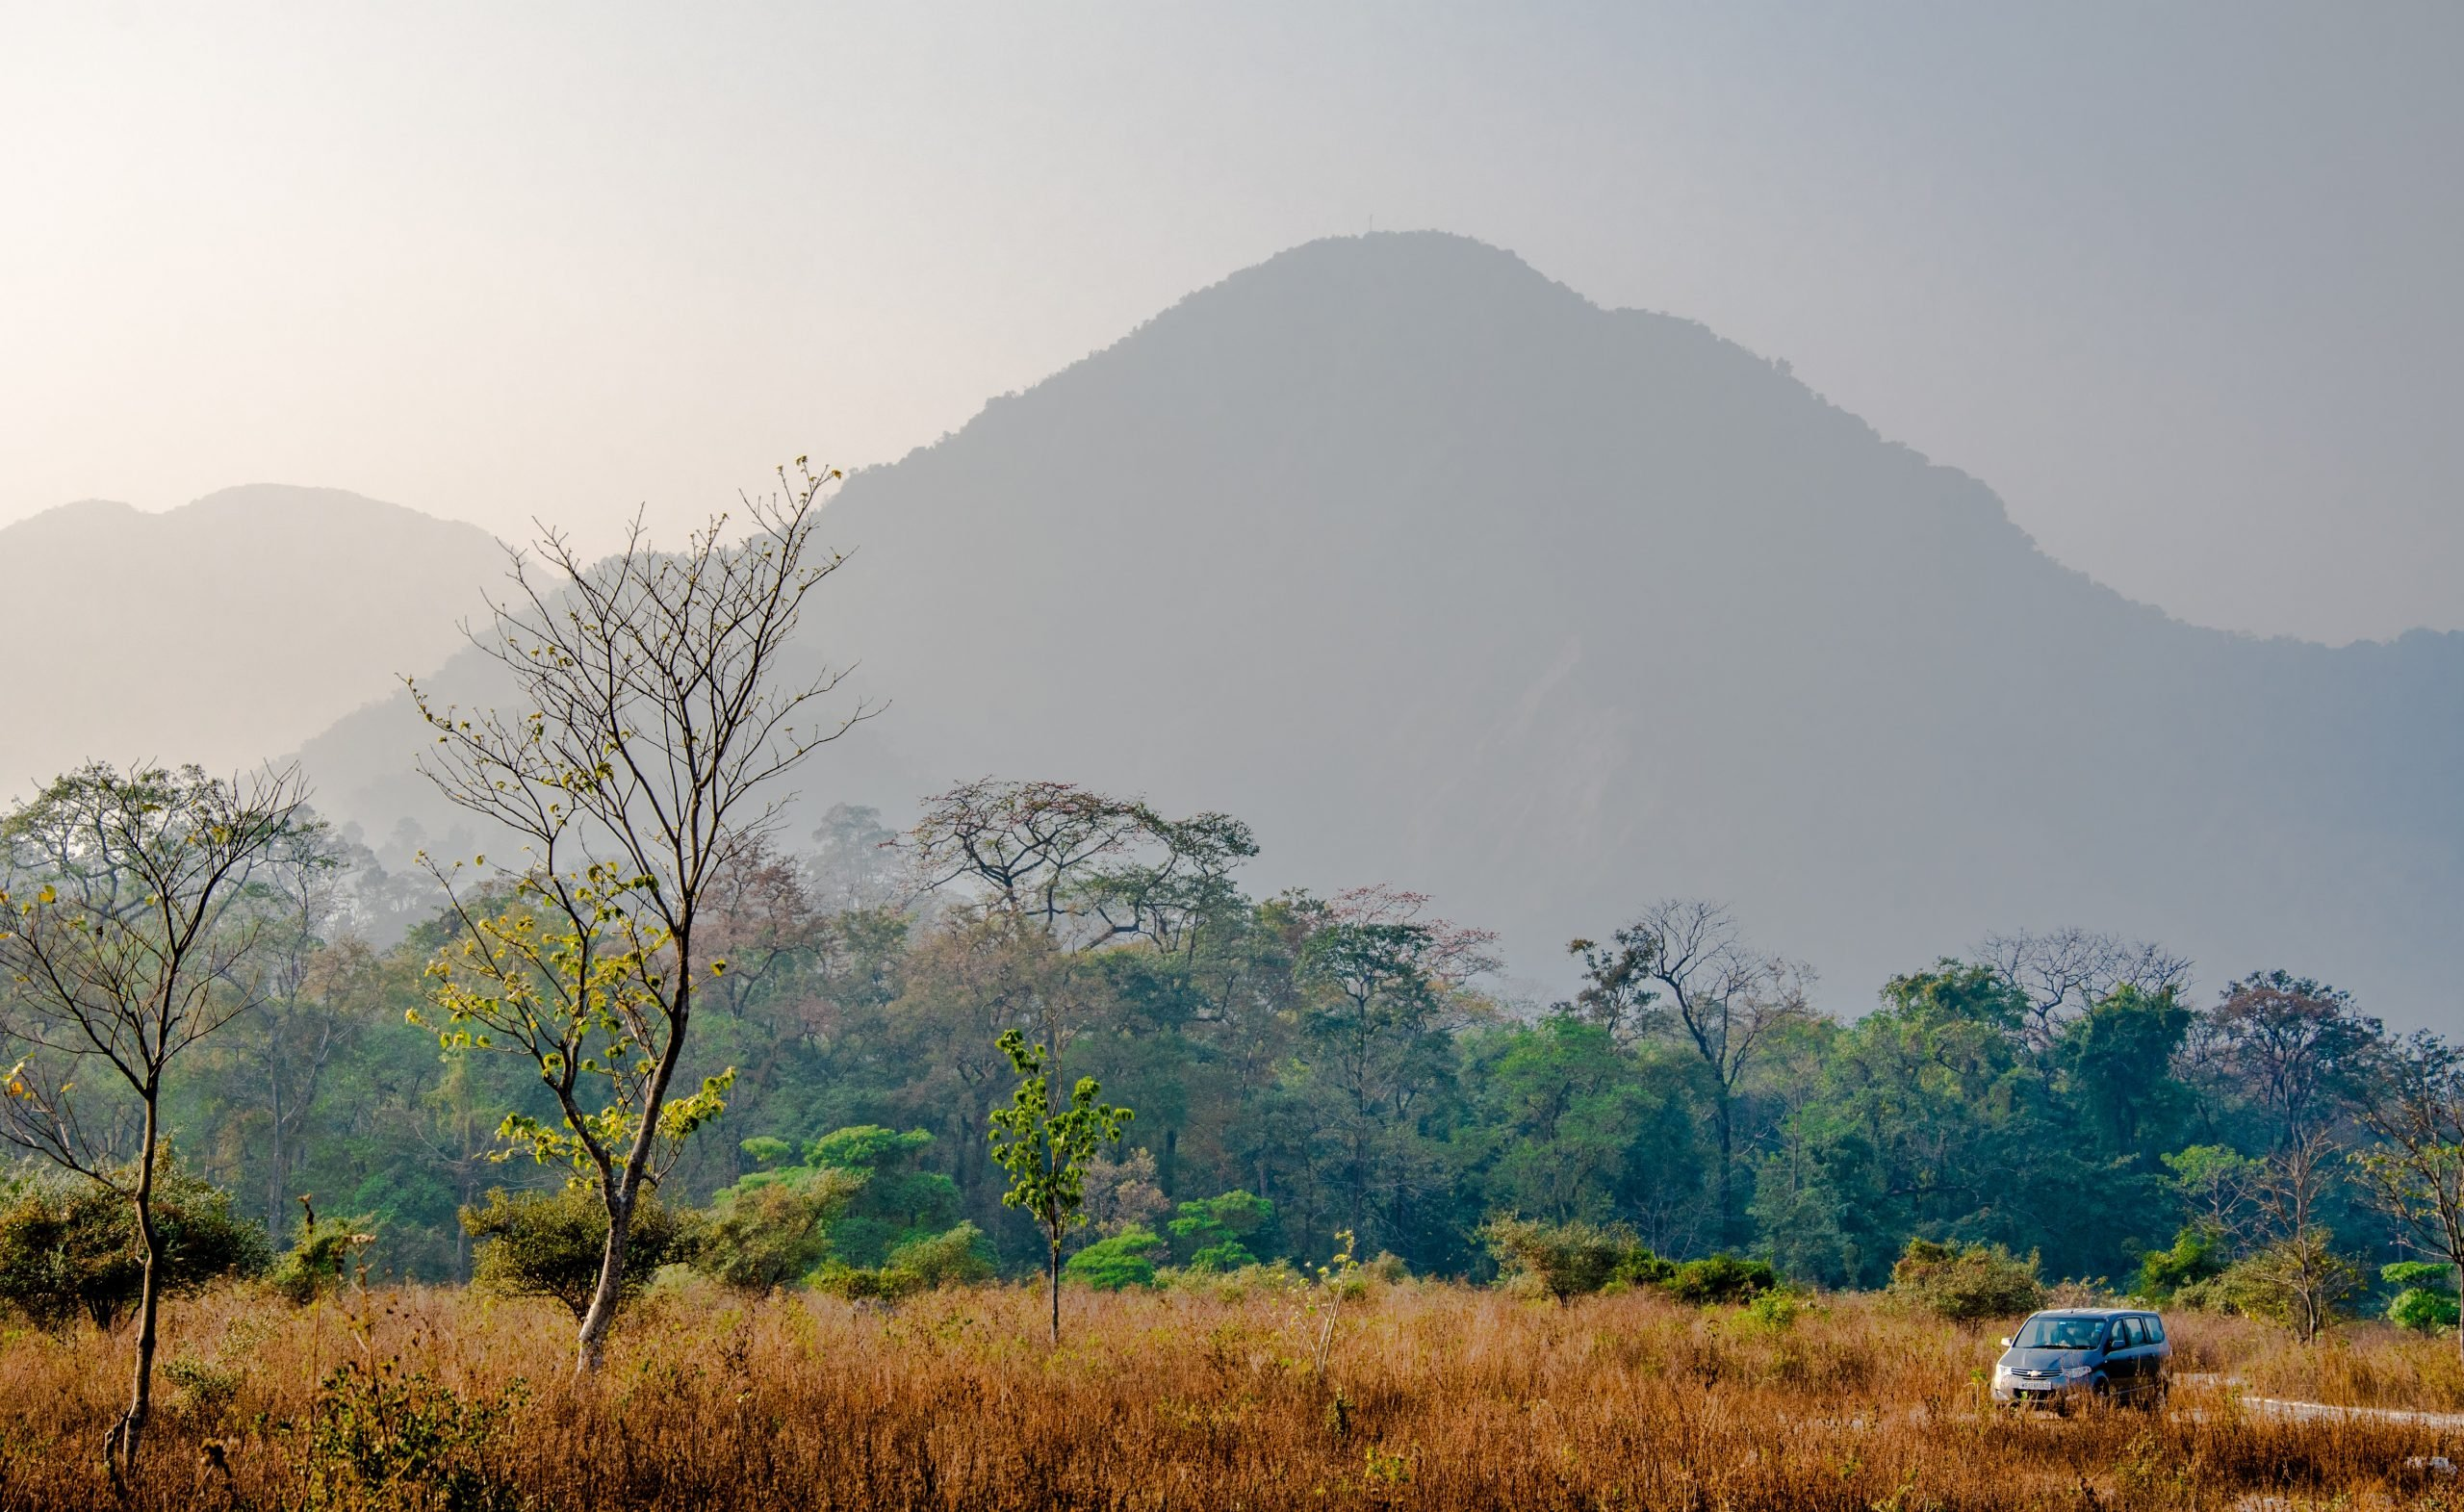 Mountains and a jungle